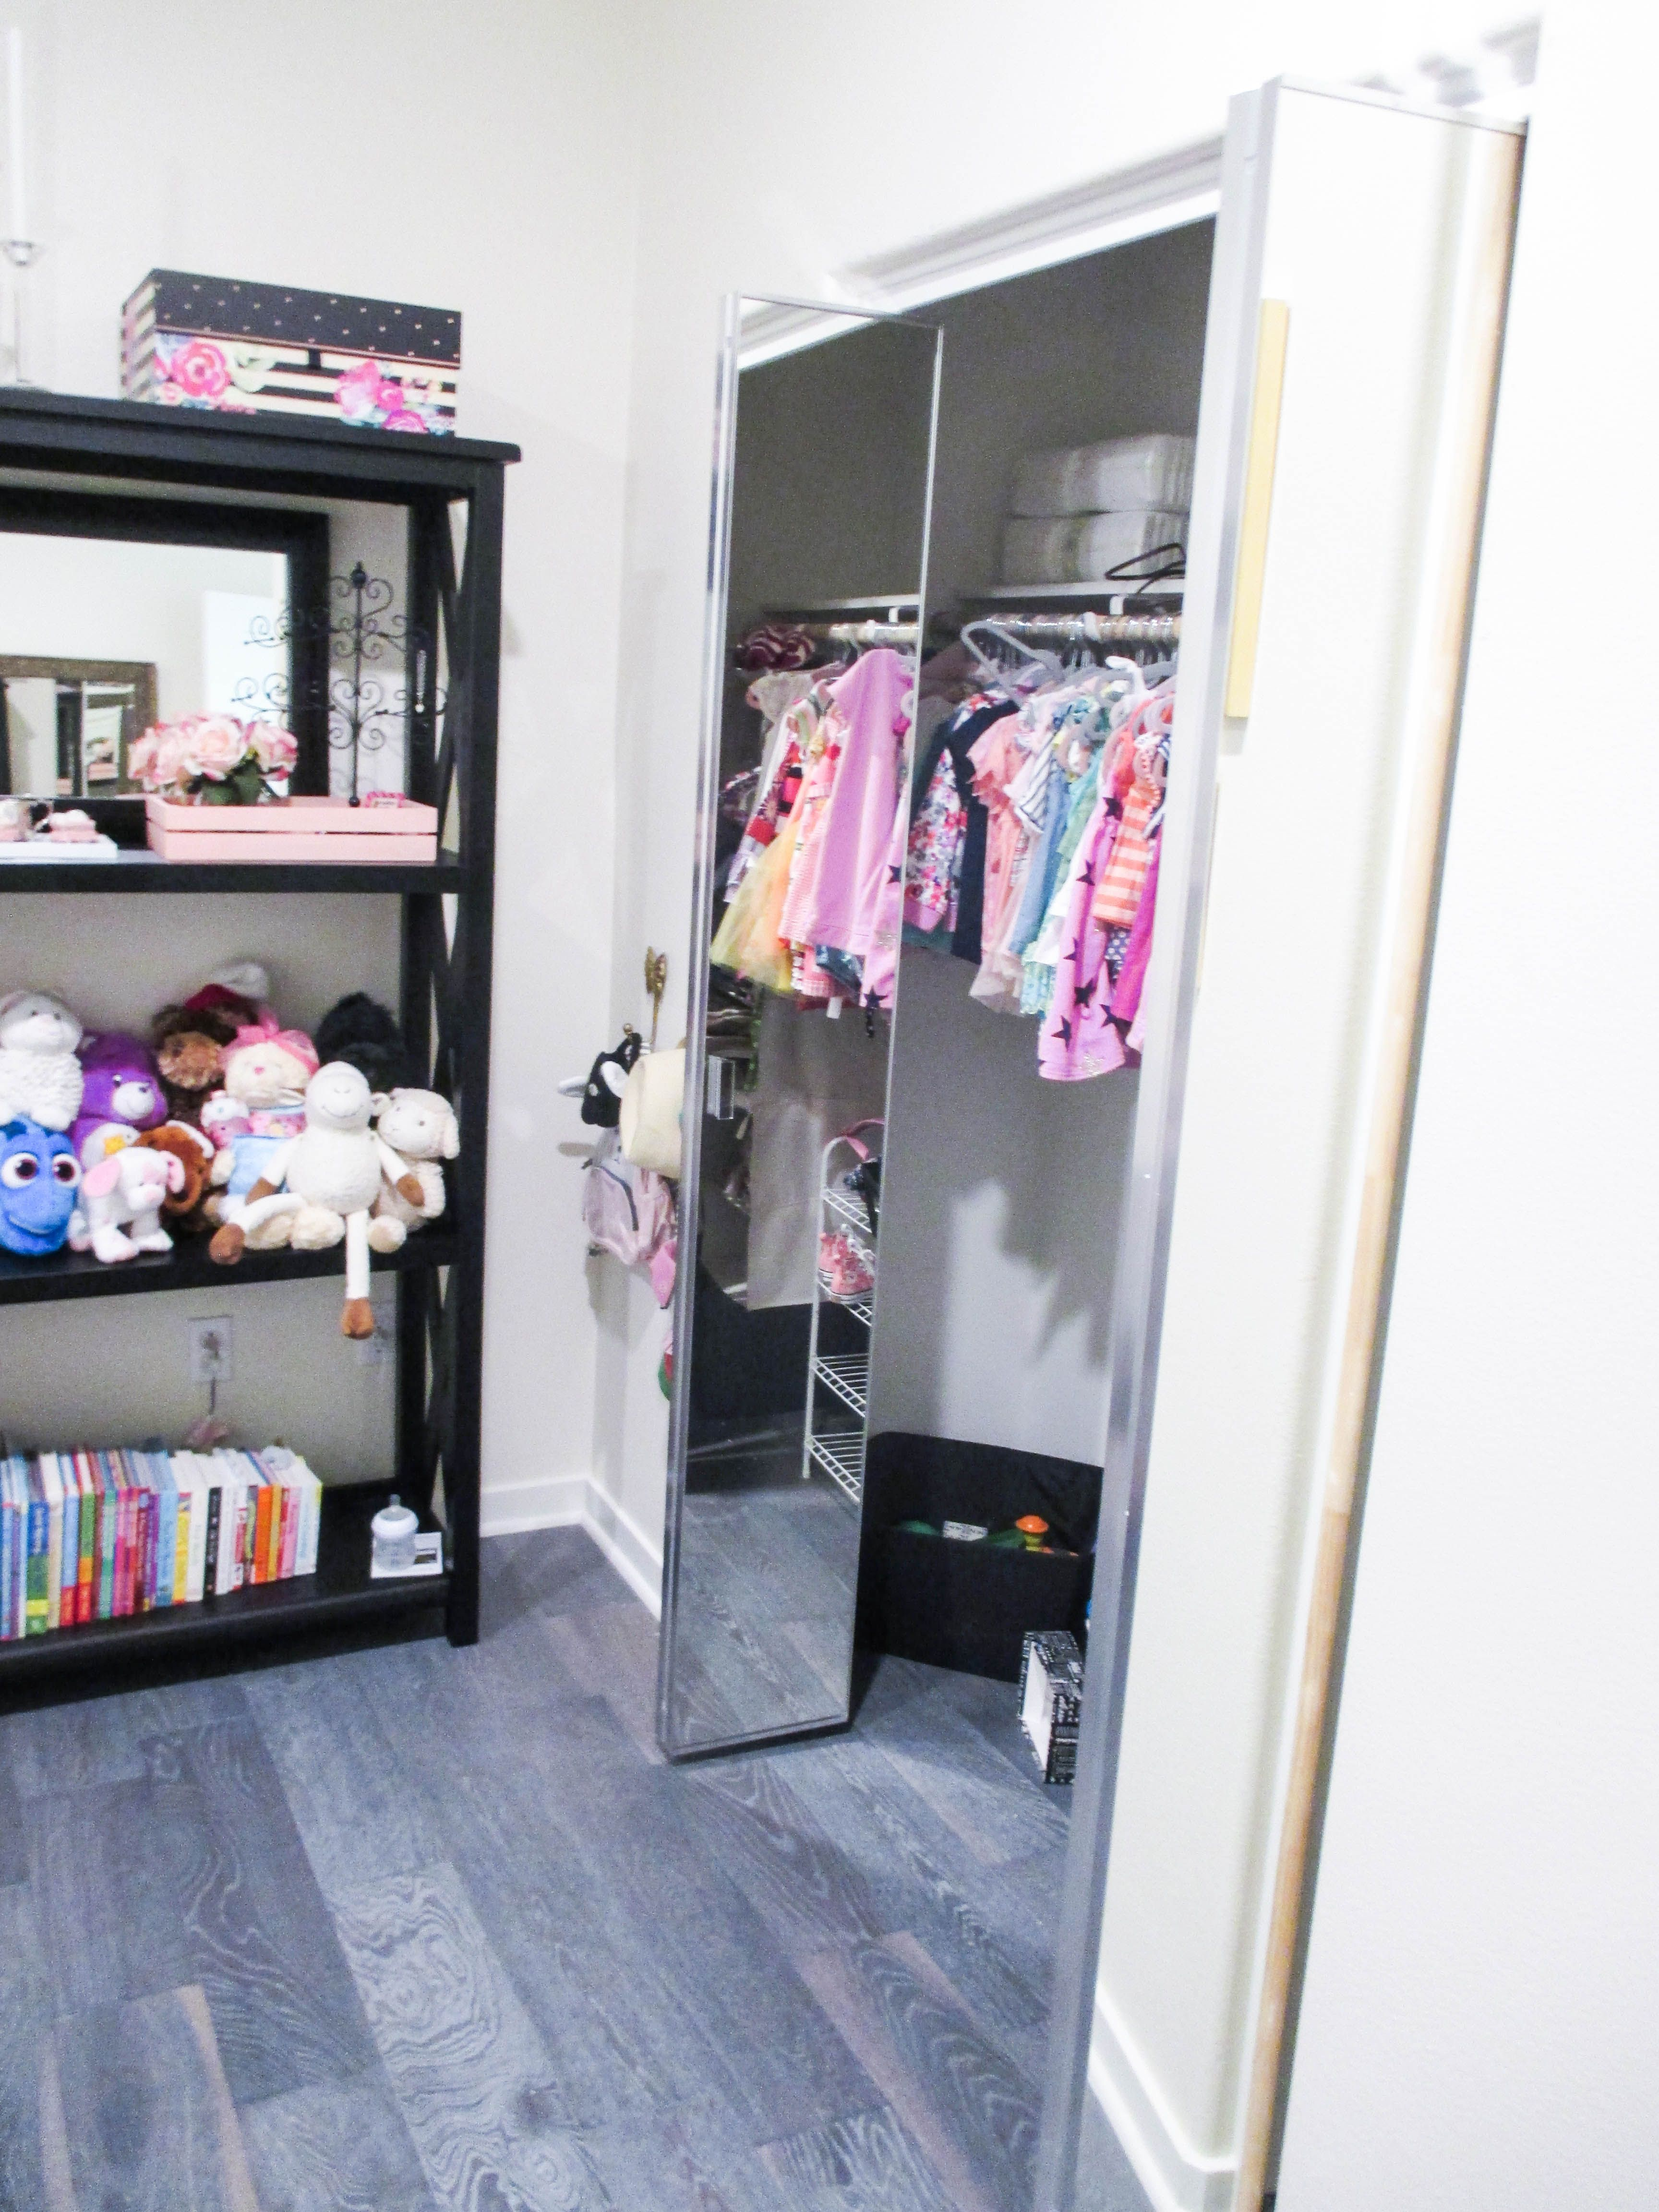 pin out check wardrobe installed contractors that of panel folding a this trimline in with recently panels installation we closet doors bi mirror kids